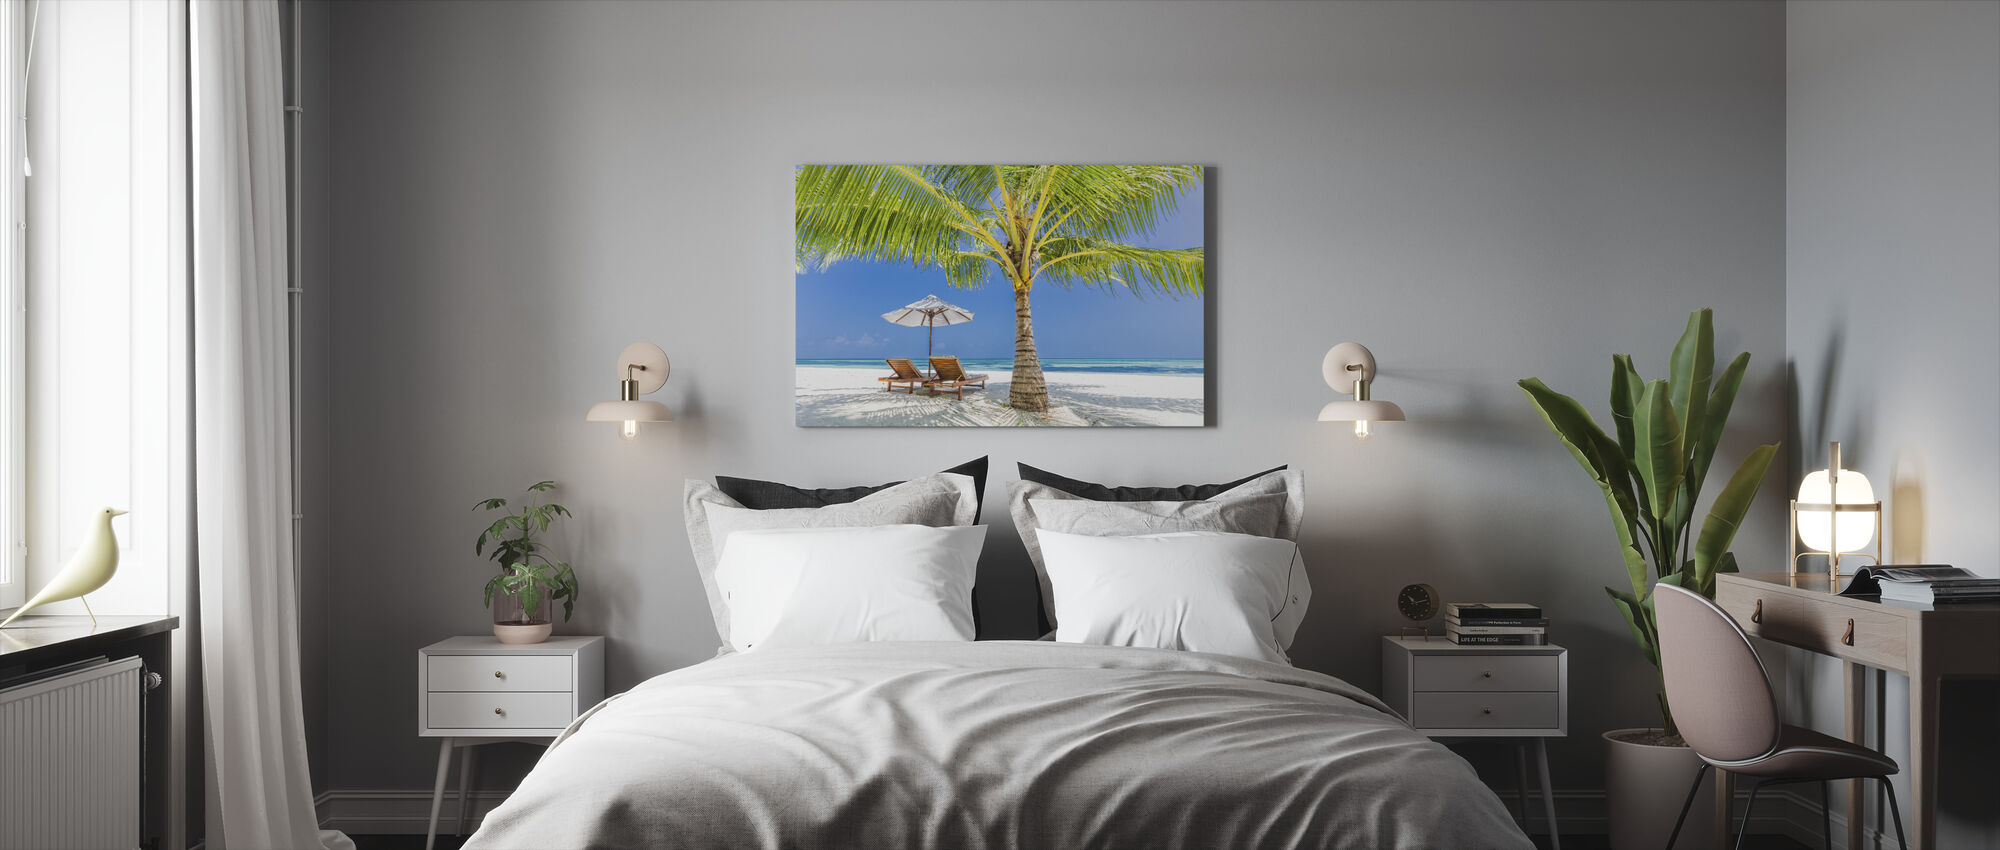 Tranquil Beach - Canvas print - Bedroom